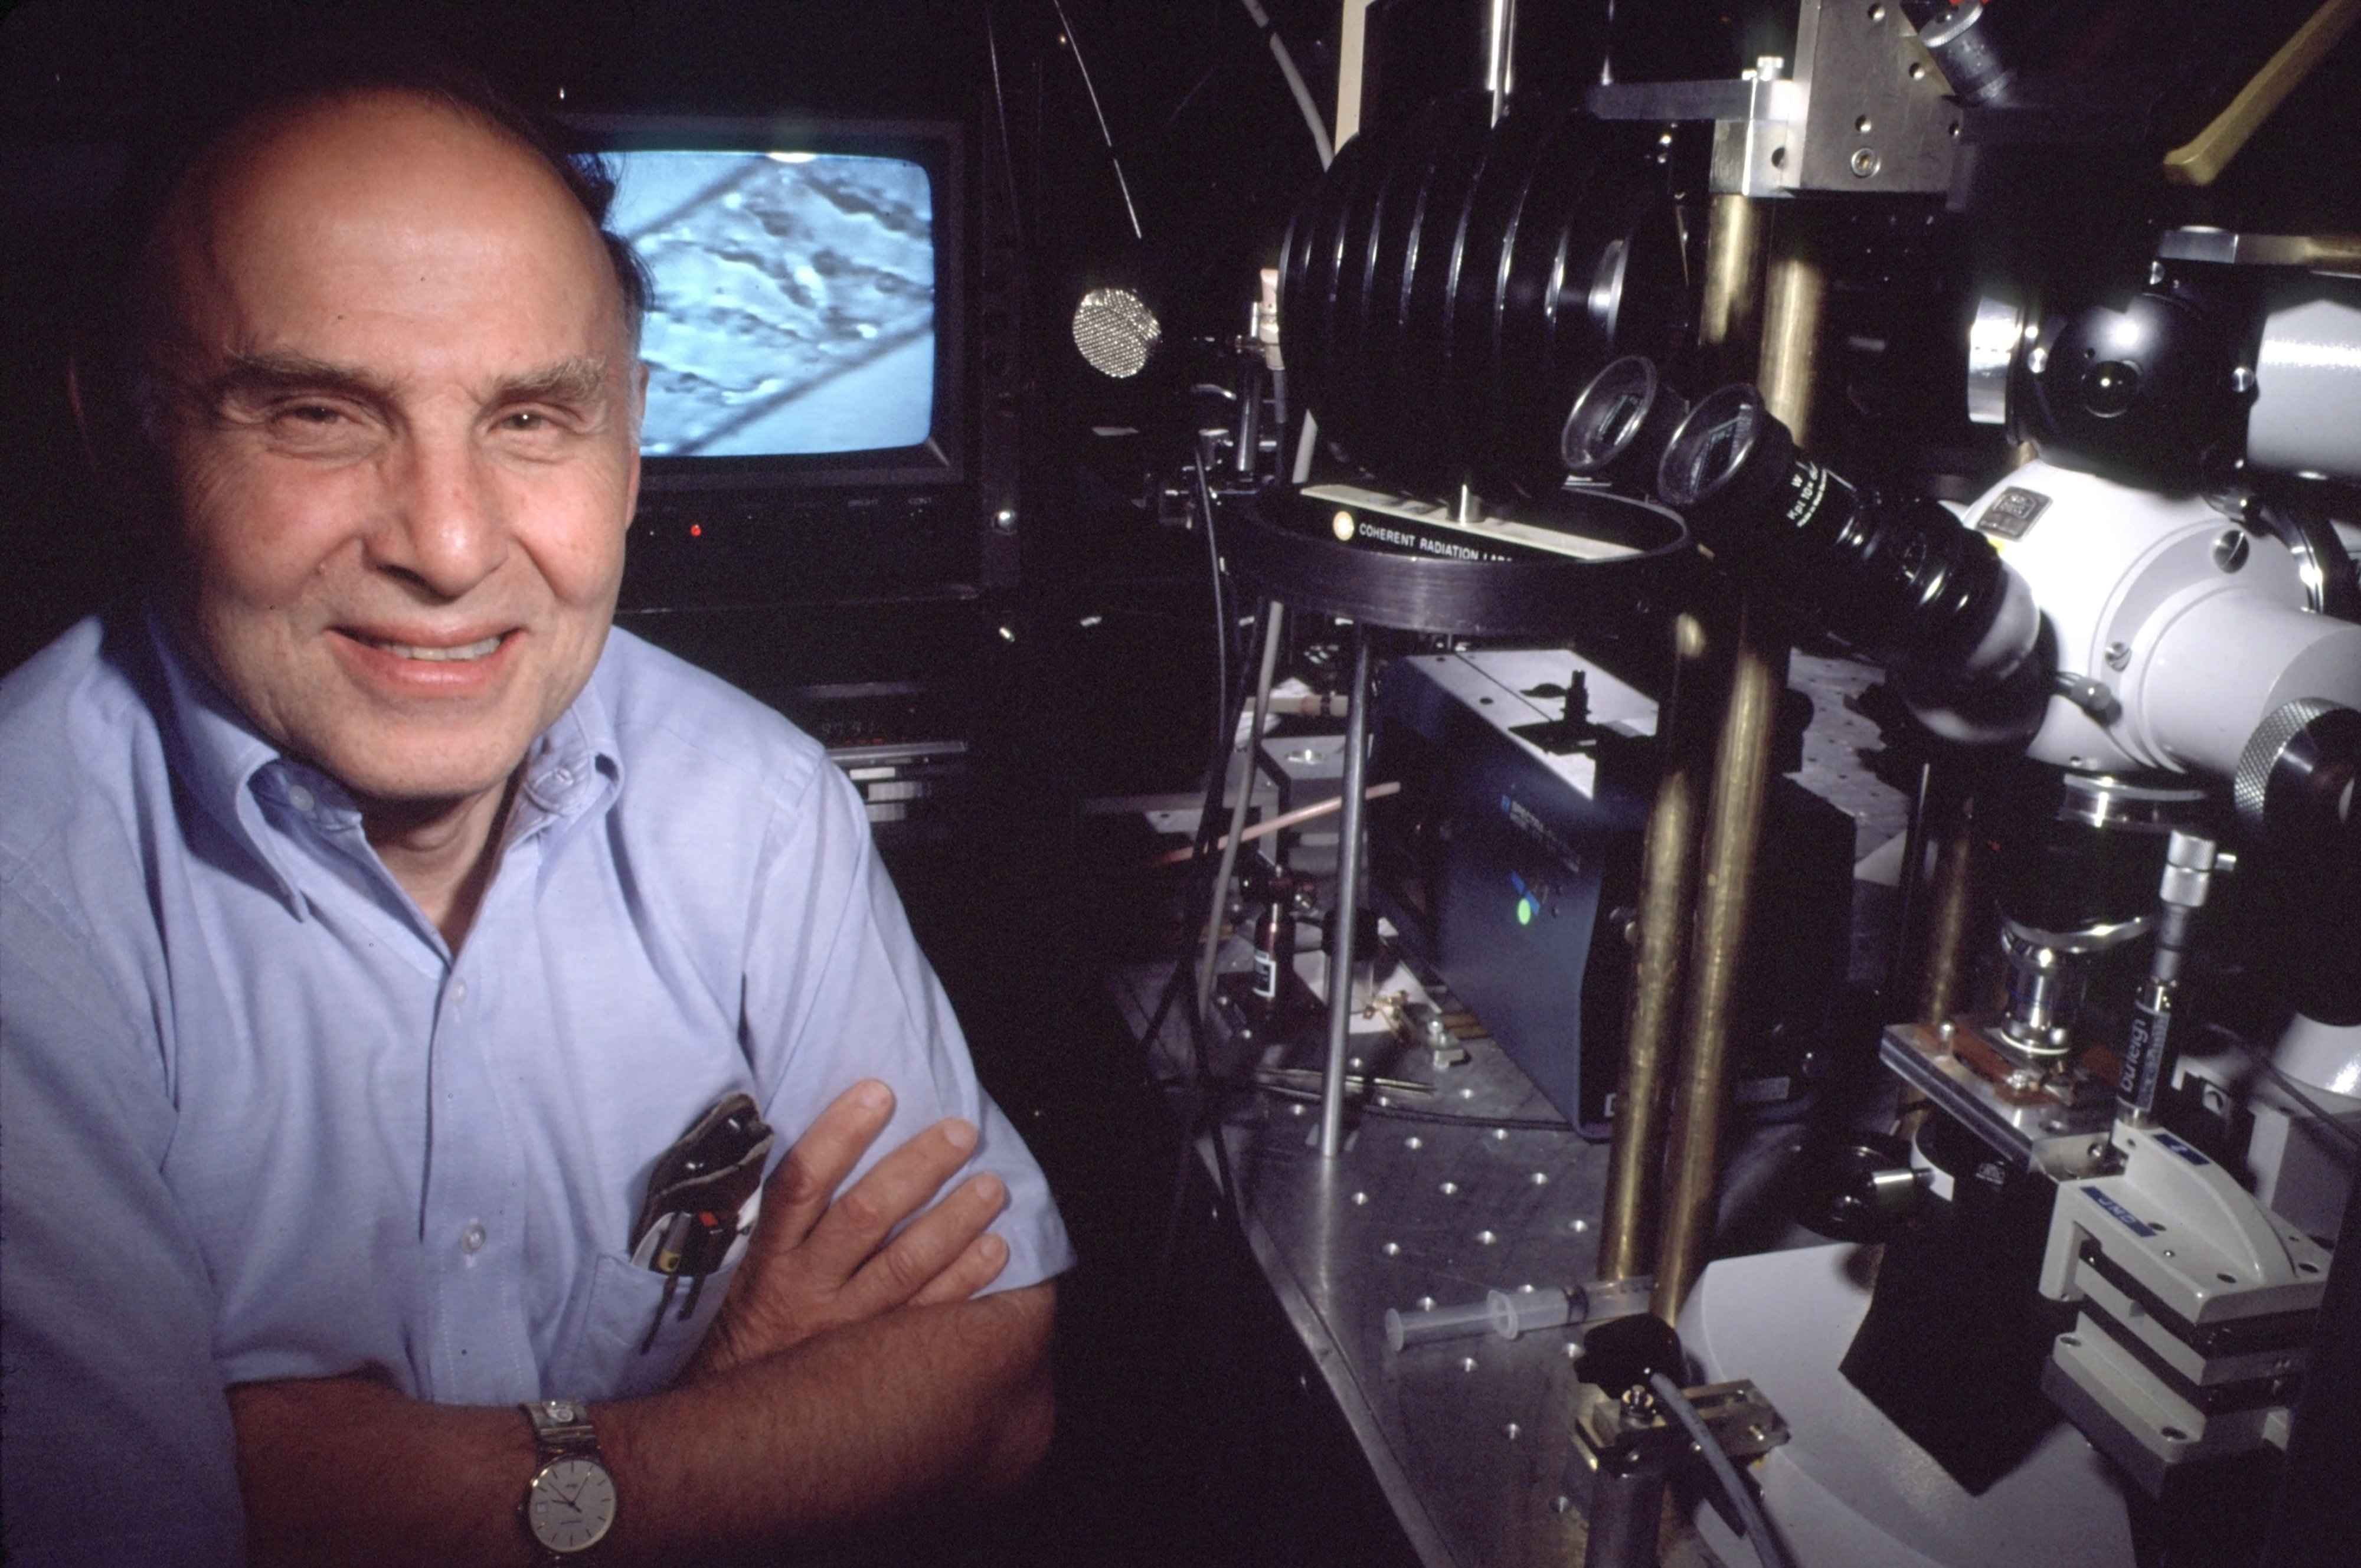 This 1988 photo shows Arthur Ashkin in Holmdel, N.J. At age 96, Ashkin won the 2018 Nobel Prize in Physics with Canadian Donna Strickland and French scientist Gerard Mourou for their work in laser physics.